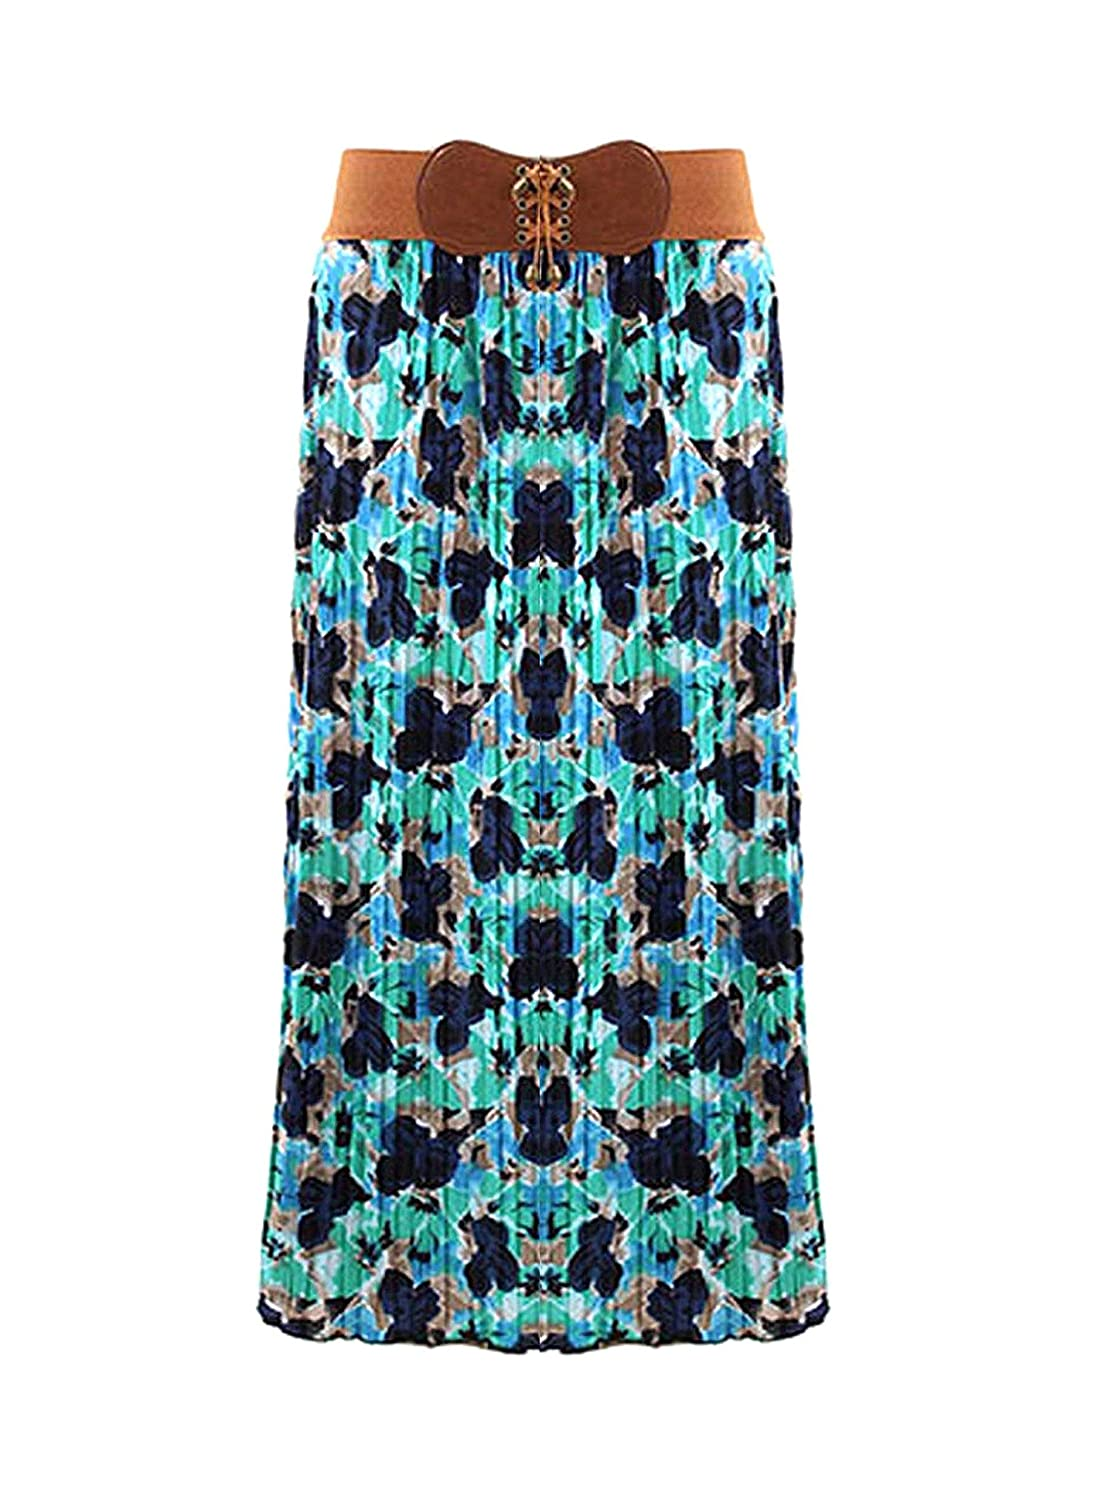 G2 Chic Womens Printed Patterned Casual Fun Long Maxi Skirts